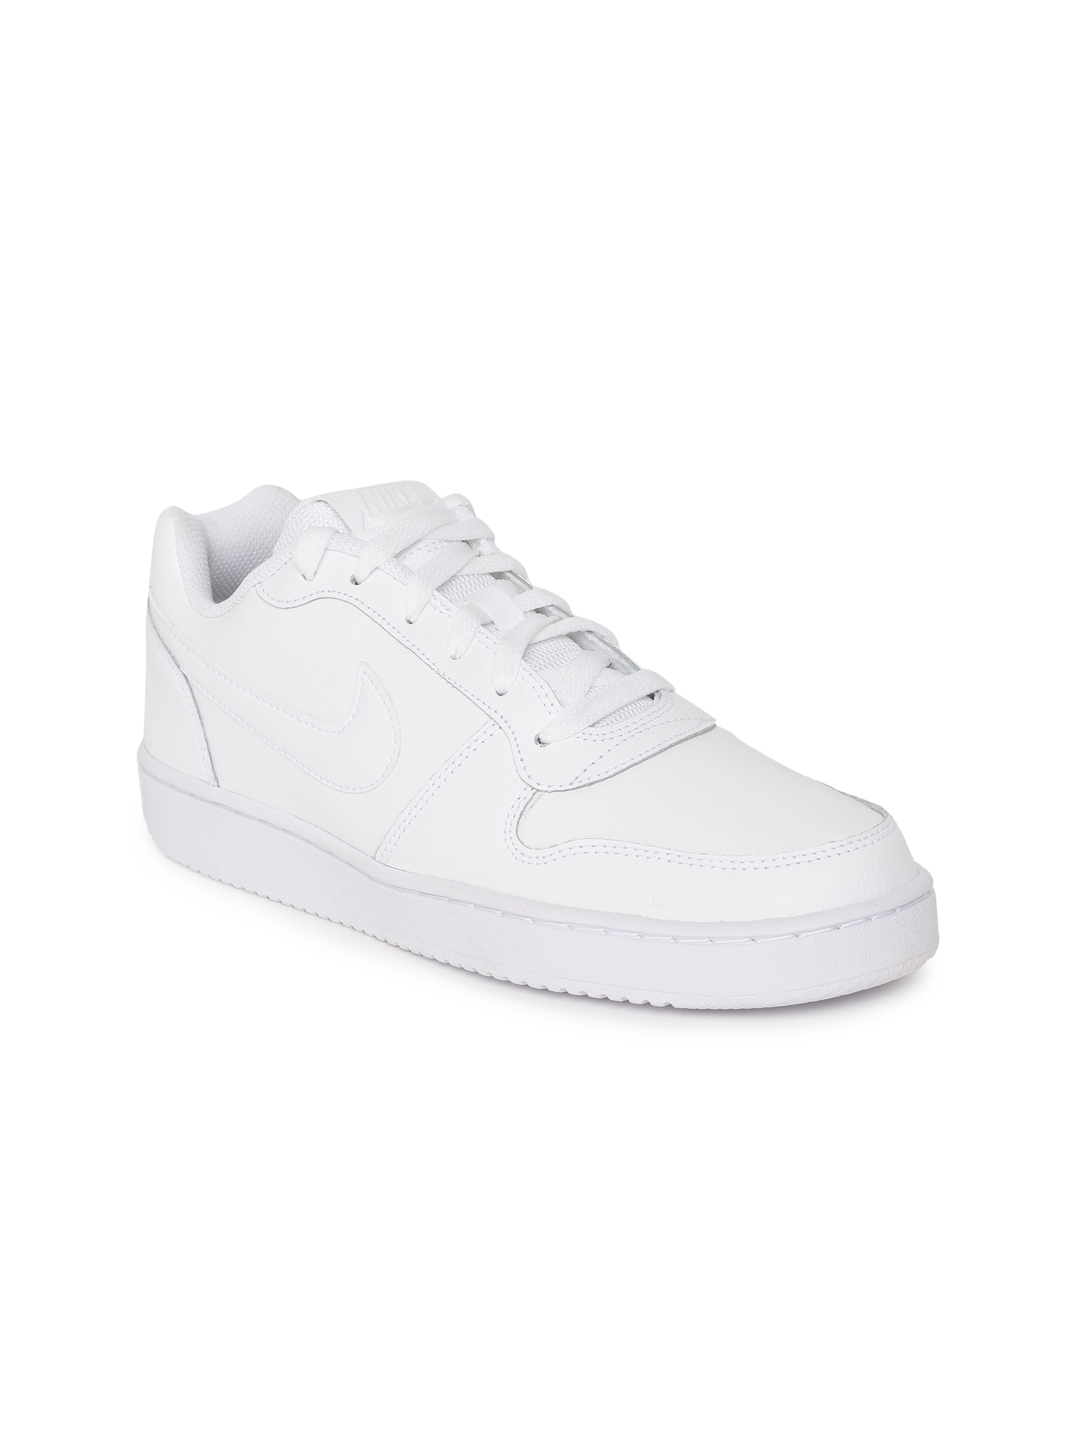 577f0ffac284 Buy Nike Women WHite Ebernon Low Leather Sneakers - Casual Shoes for ...